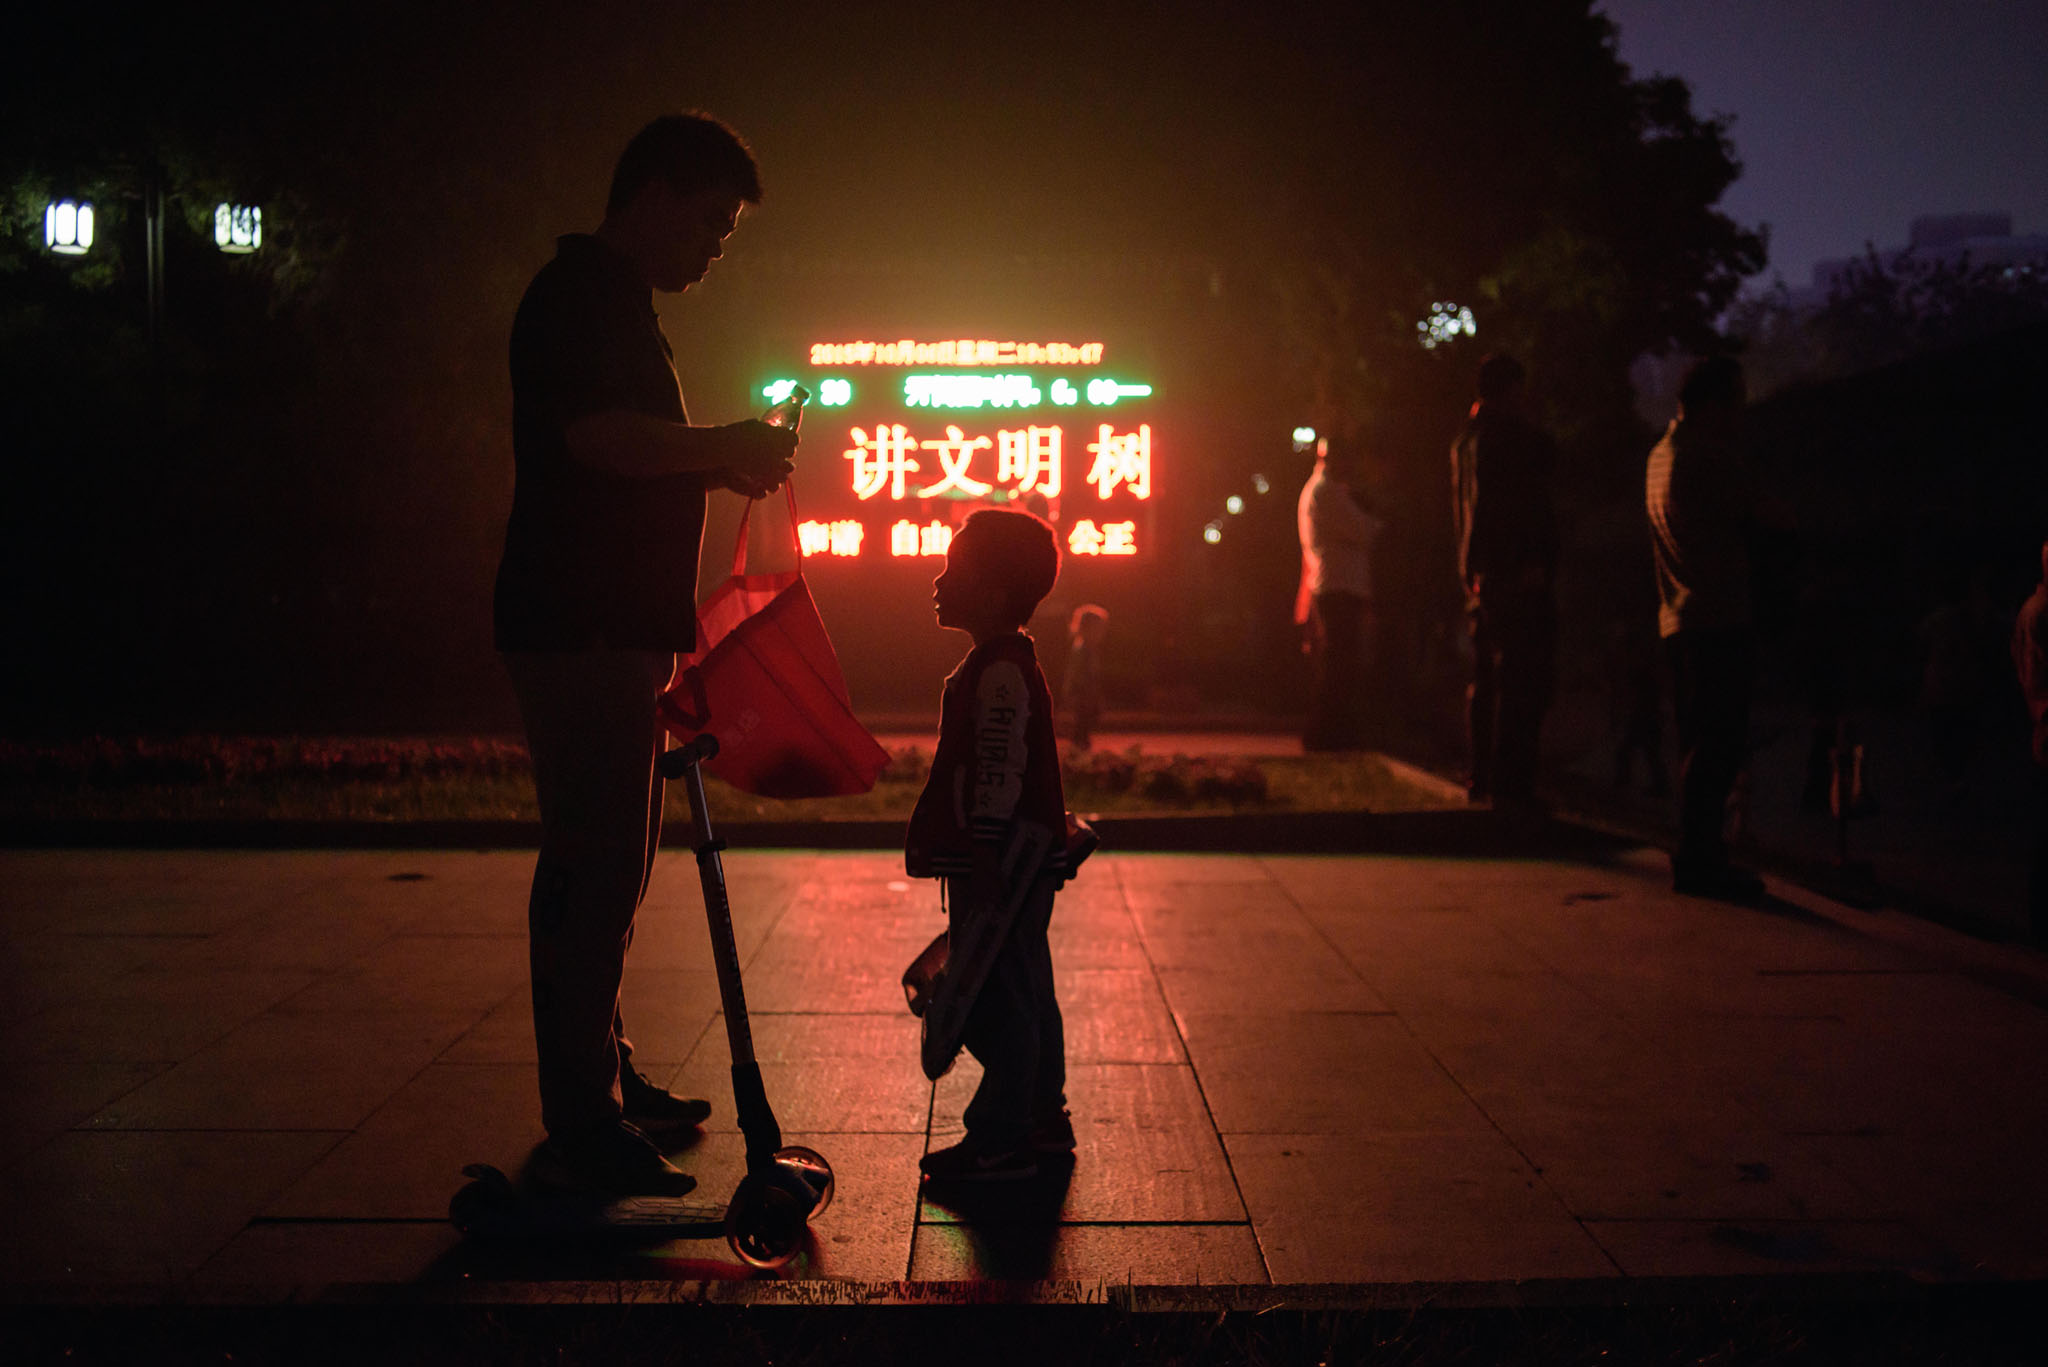 A man opens a drink to a child as they stand before a display board at the entrance to a park in Beijing